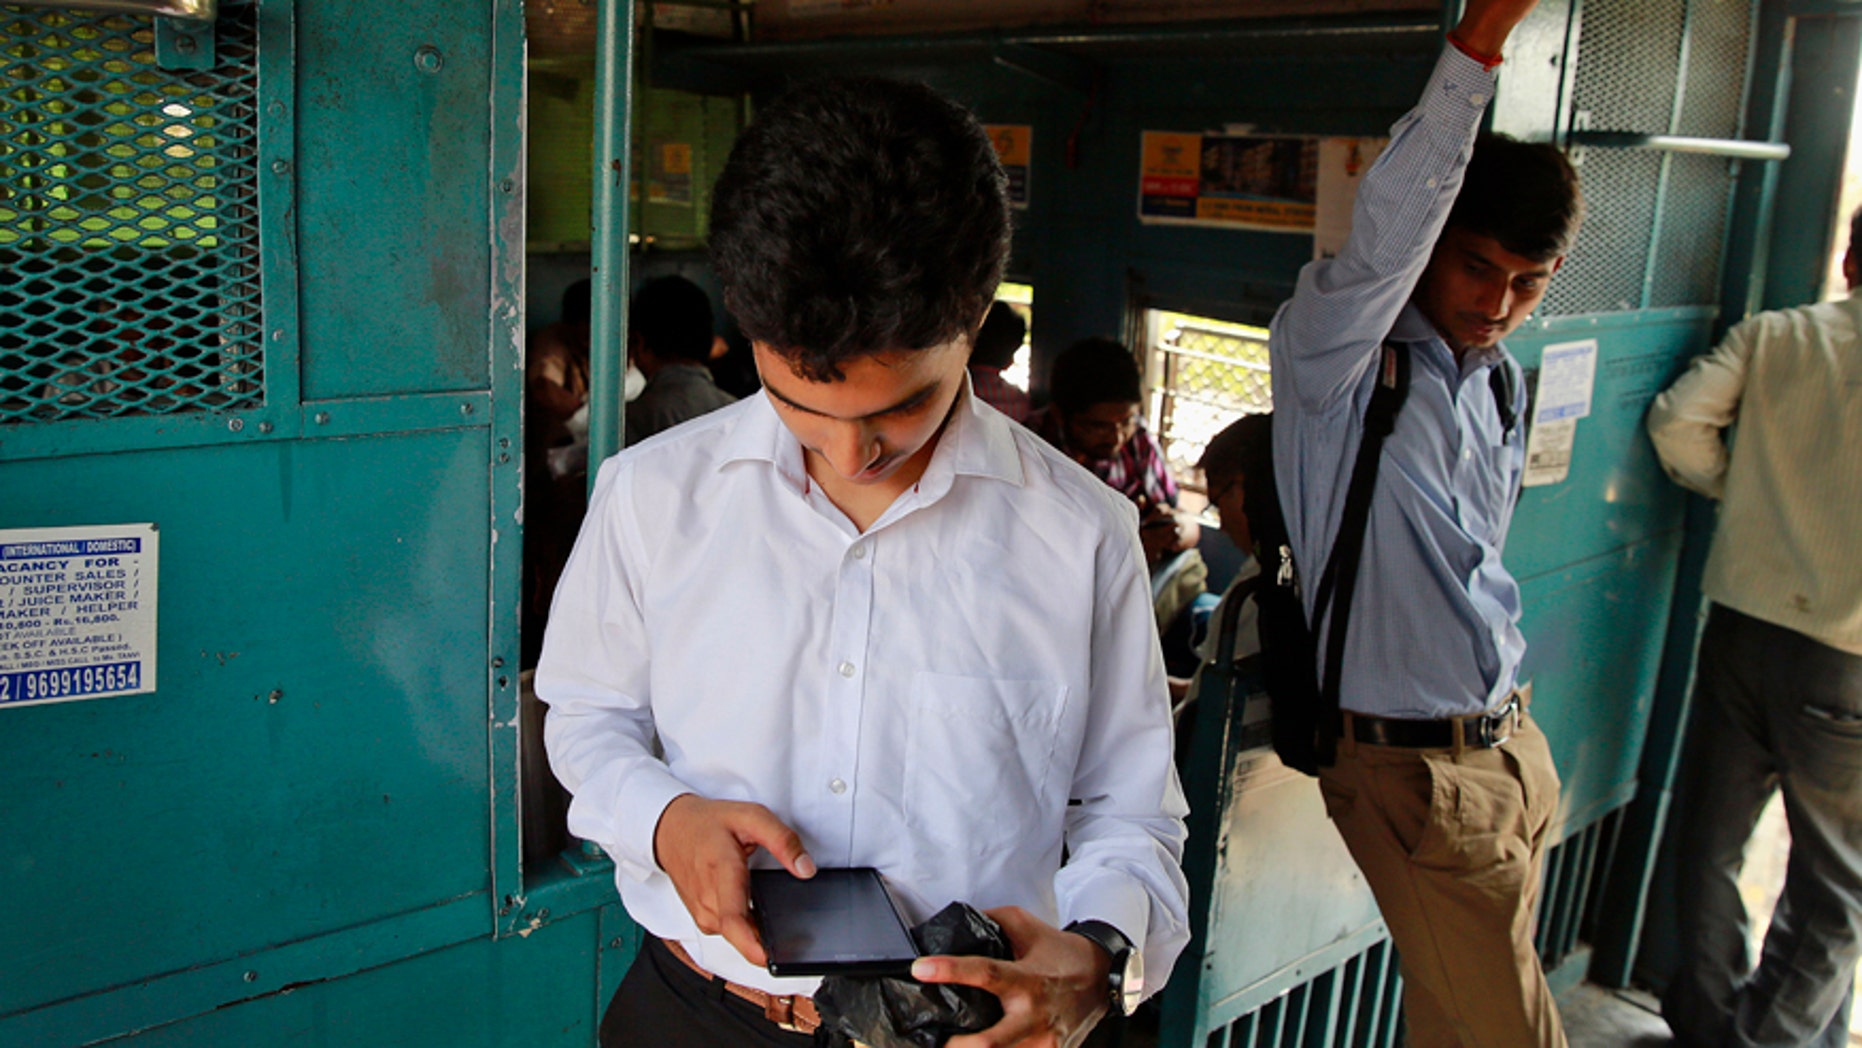 An Indian man surfs the internet on his smartphone as he travels in a local train in Mumbai, India, Tuesday, March 24, 2015.